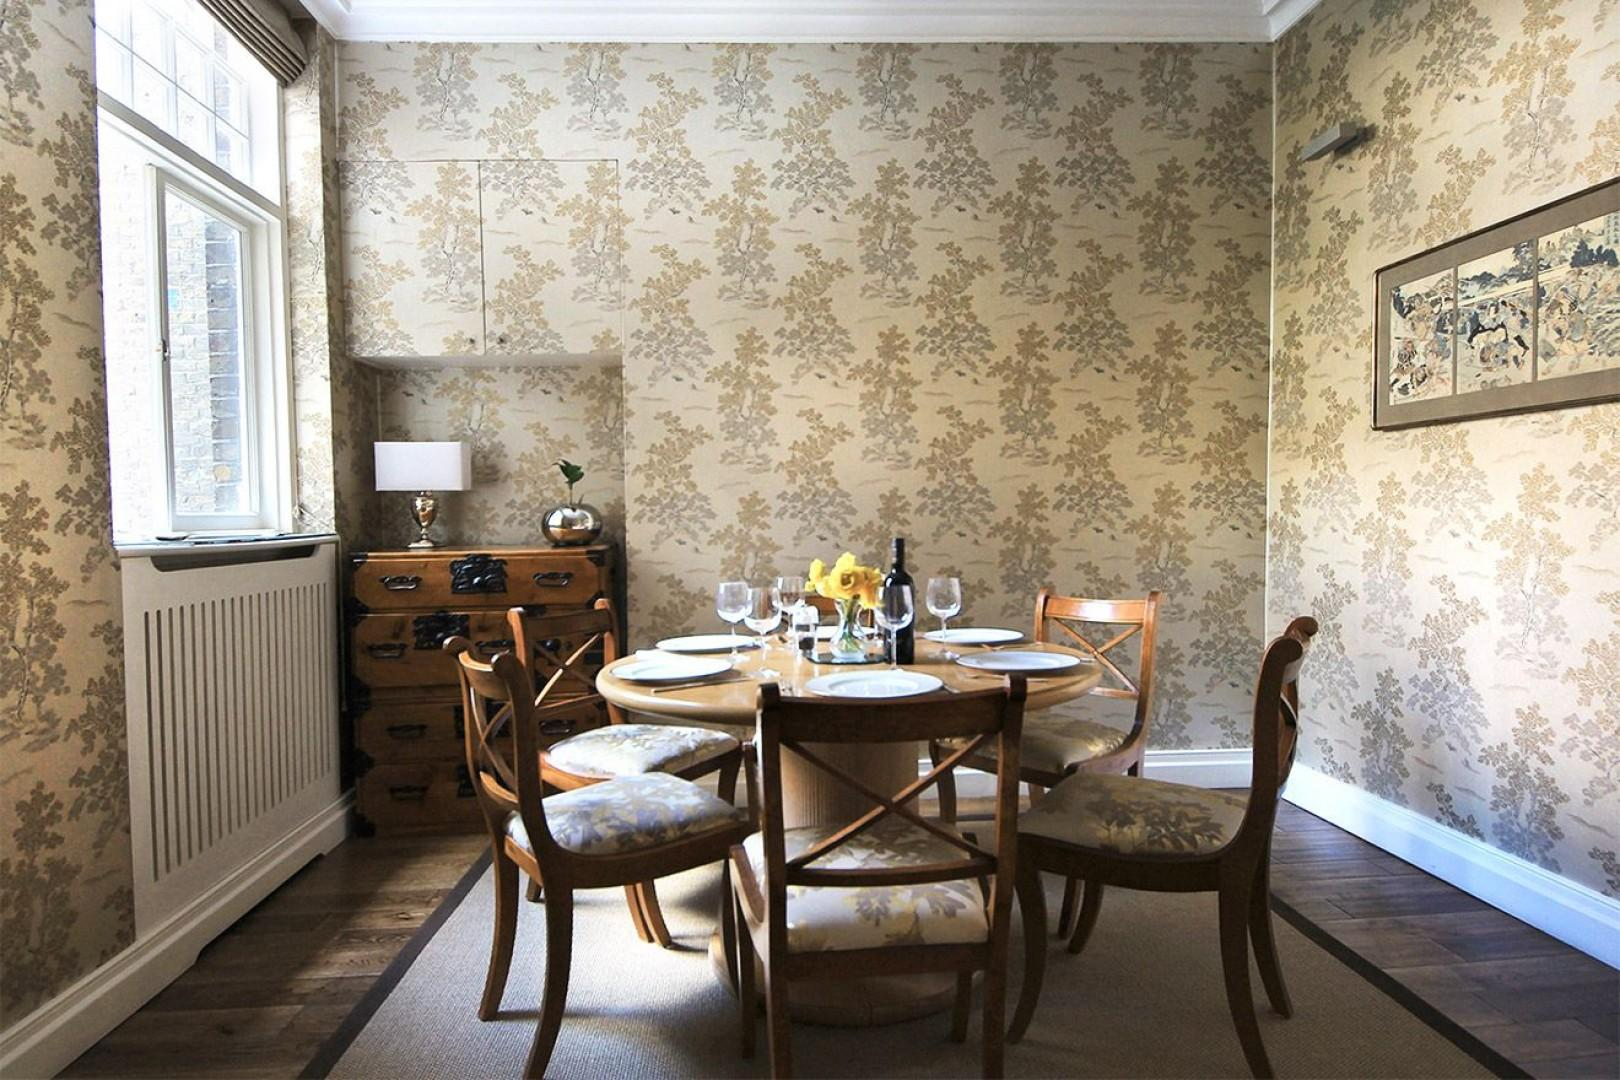 Stylish formal dining room located near the kitchen